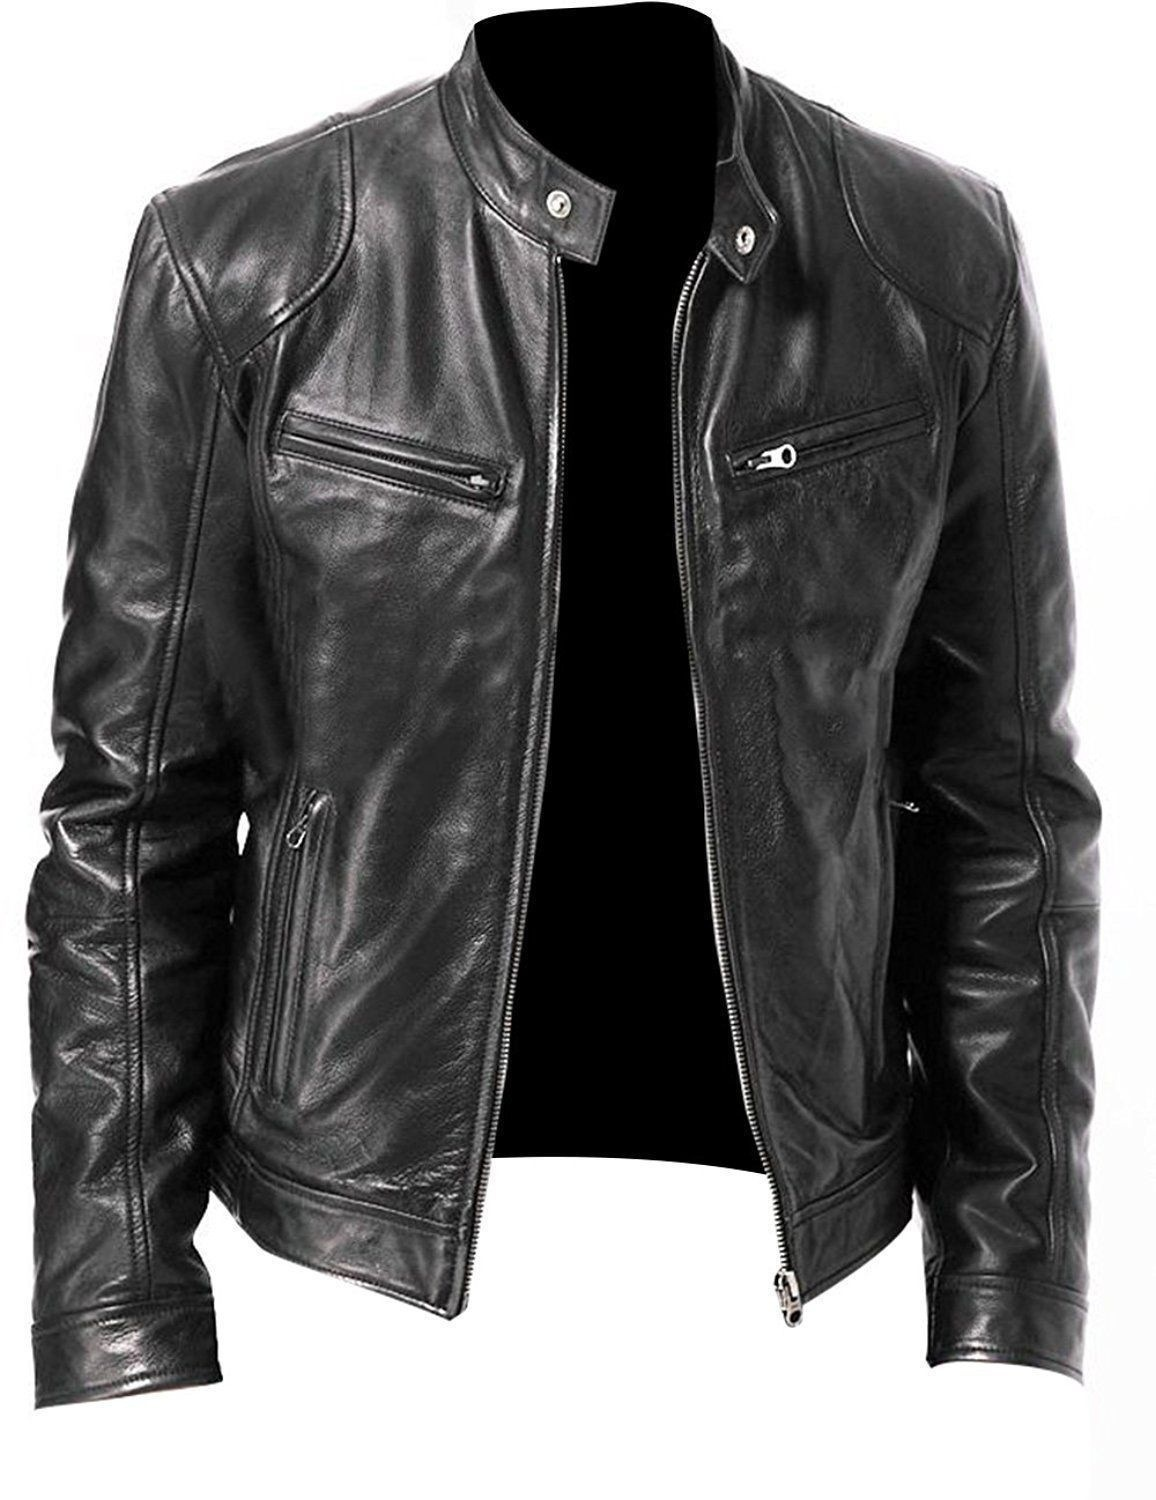 Men's Cardigan Pu Leather Jacket Motorcycle Black Faux Leather Jacket Men Stand Collar Casual Coat Boy Plus Size Xxxl 4xl 5xl